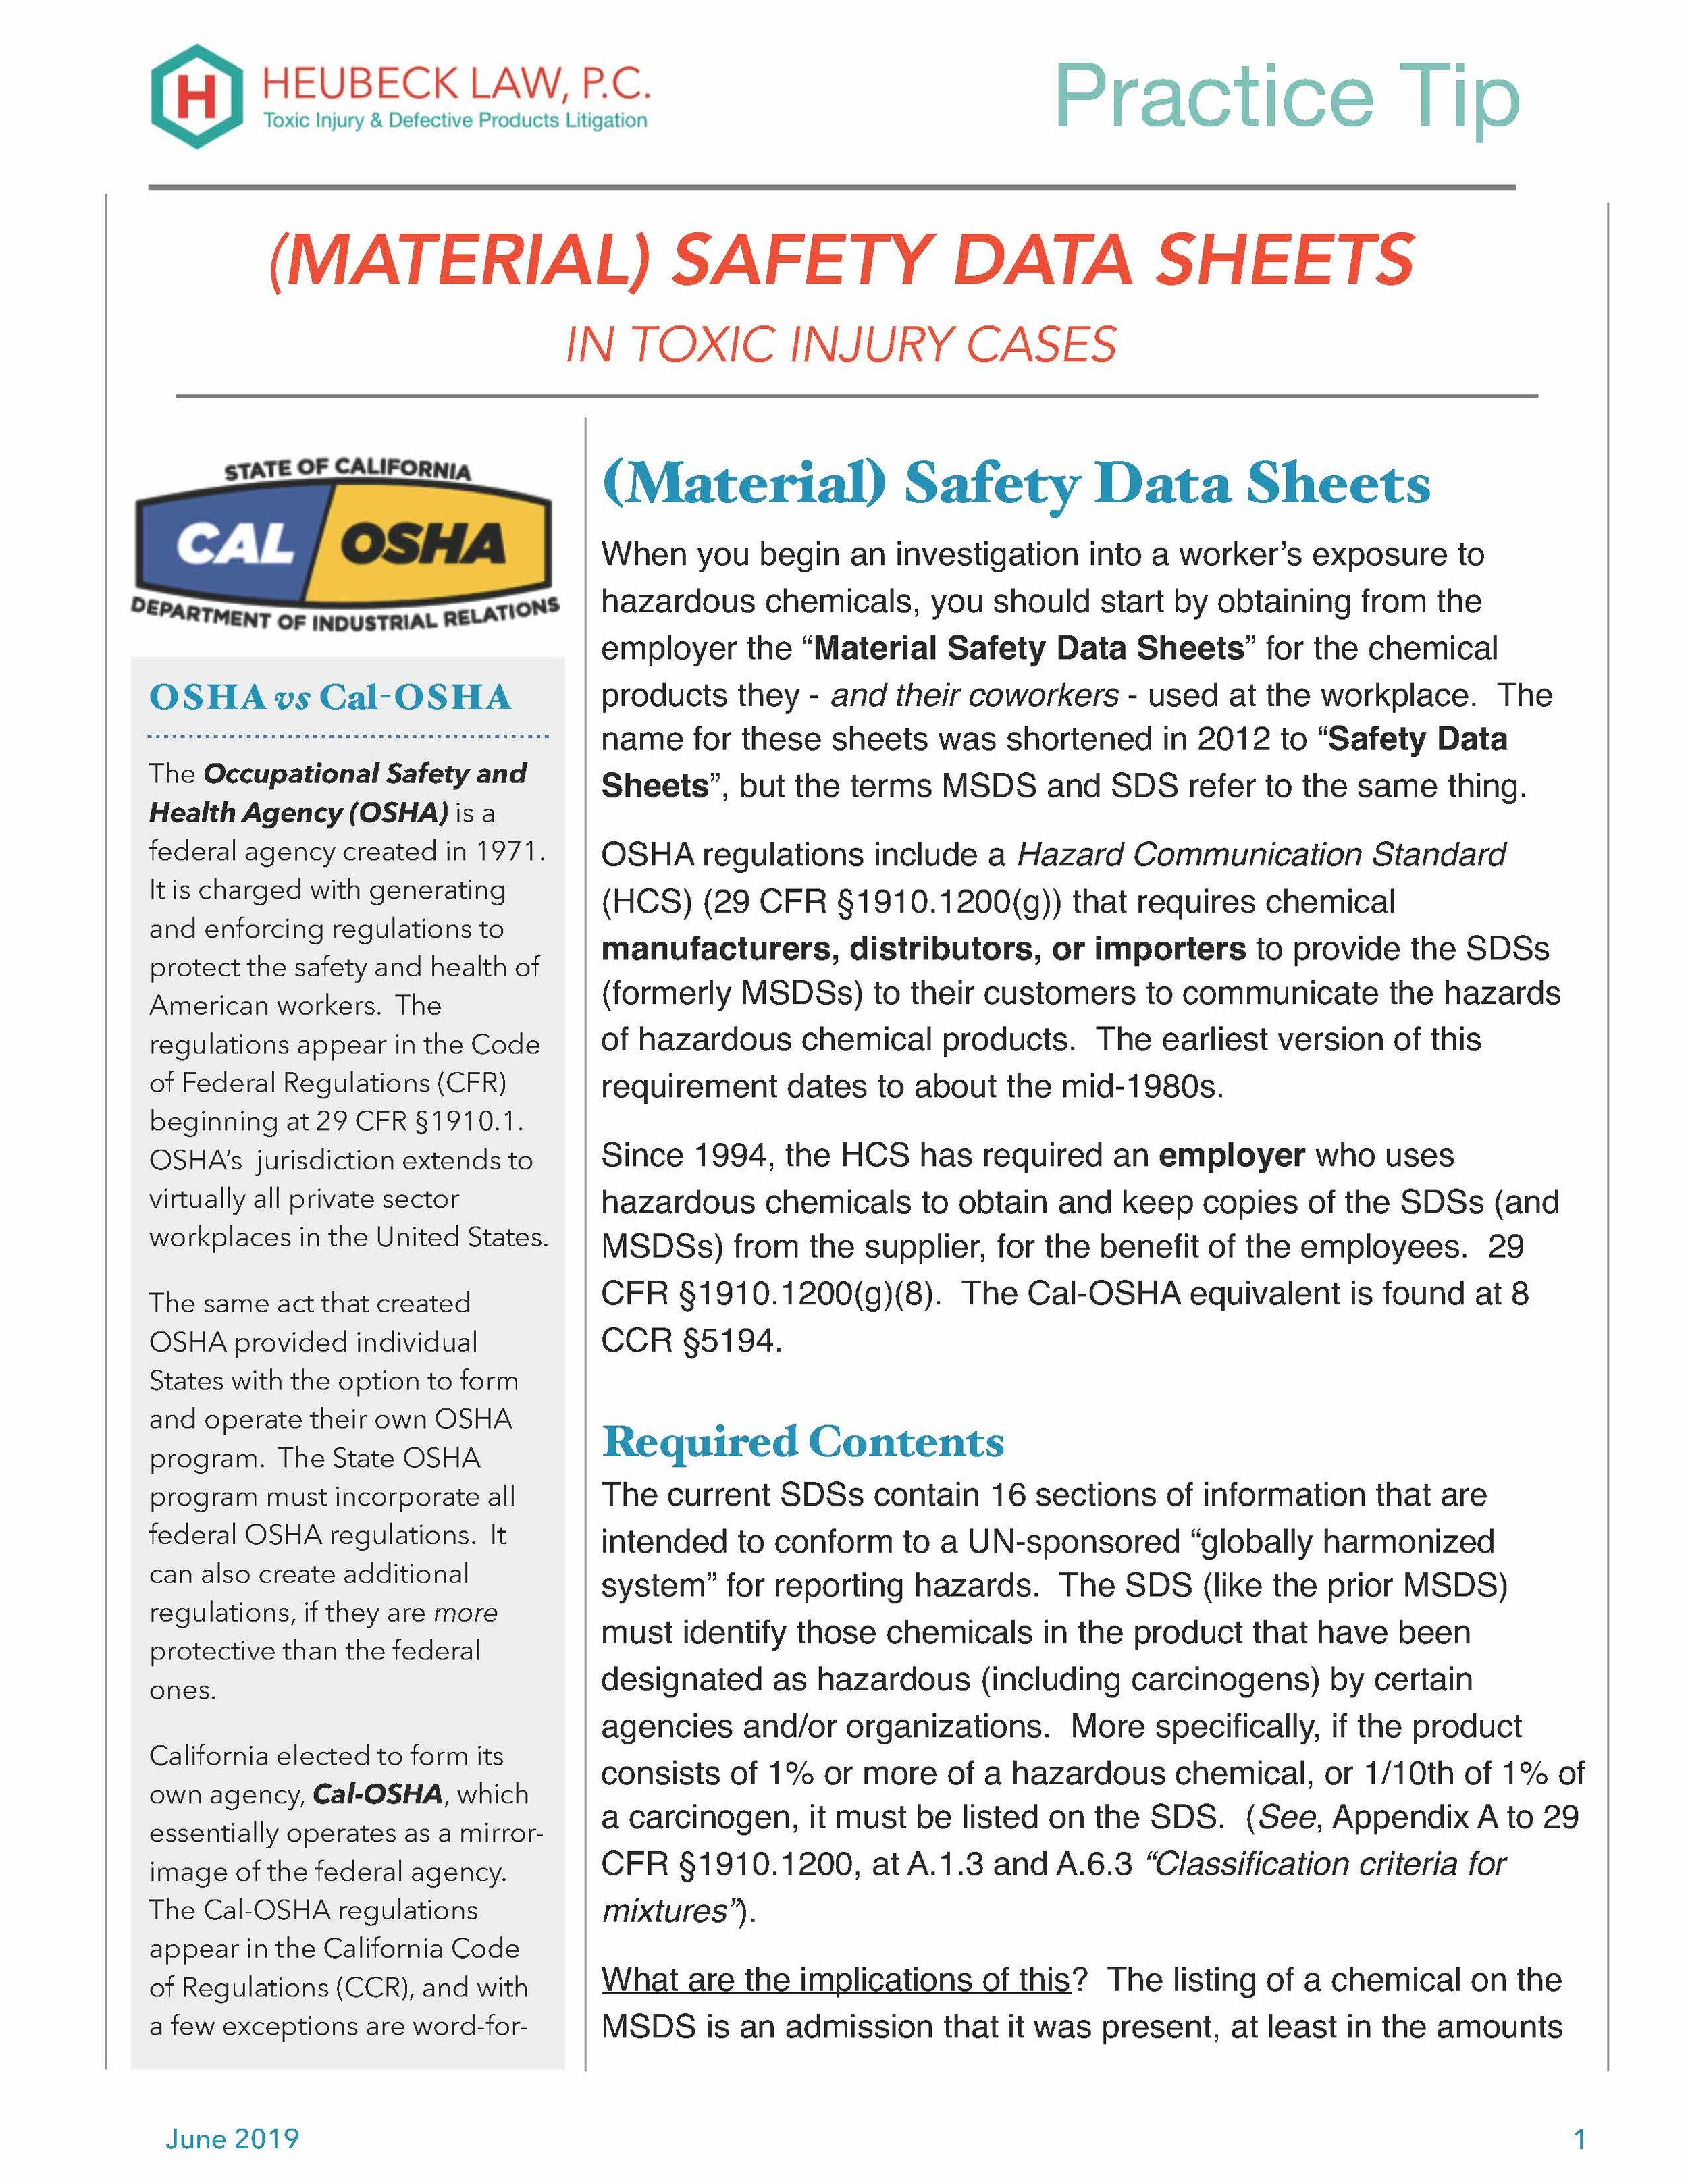 Practice Tip - Material Safety Data Sheets_Page_1.jpg